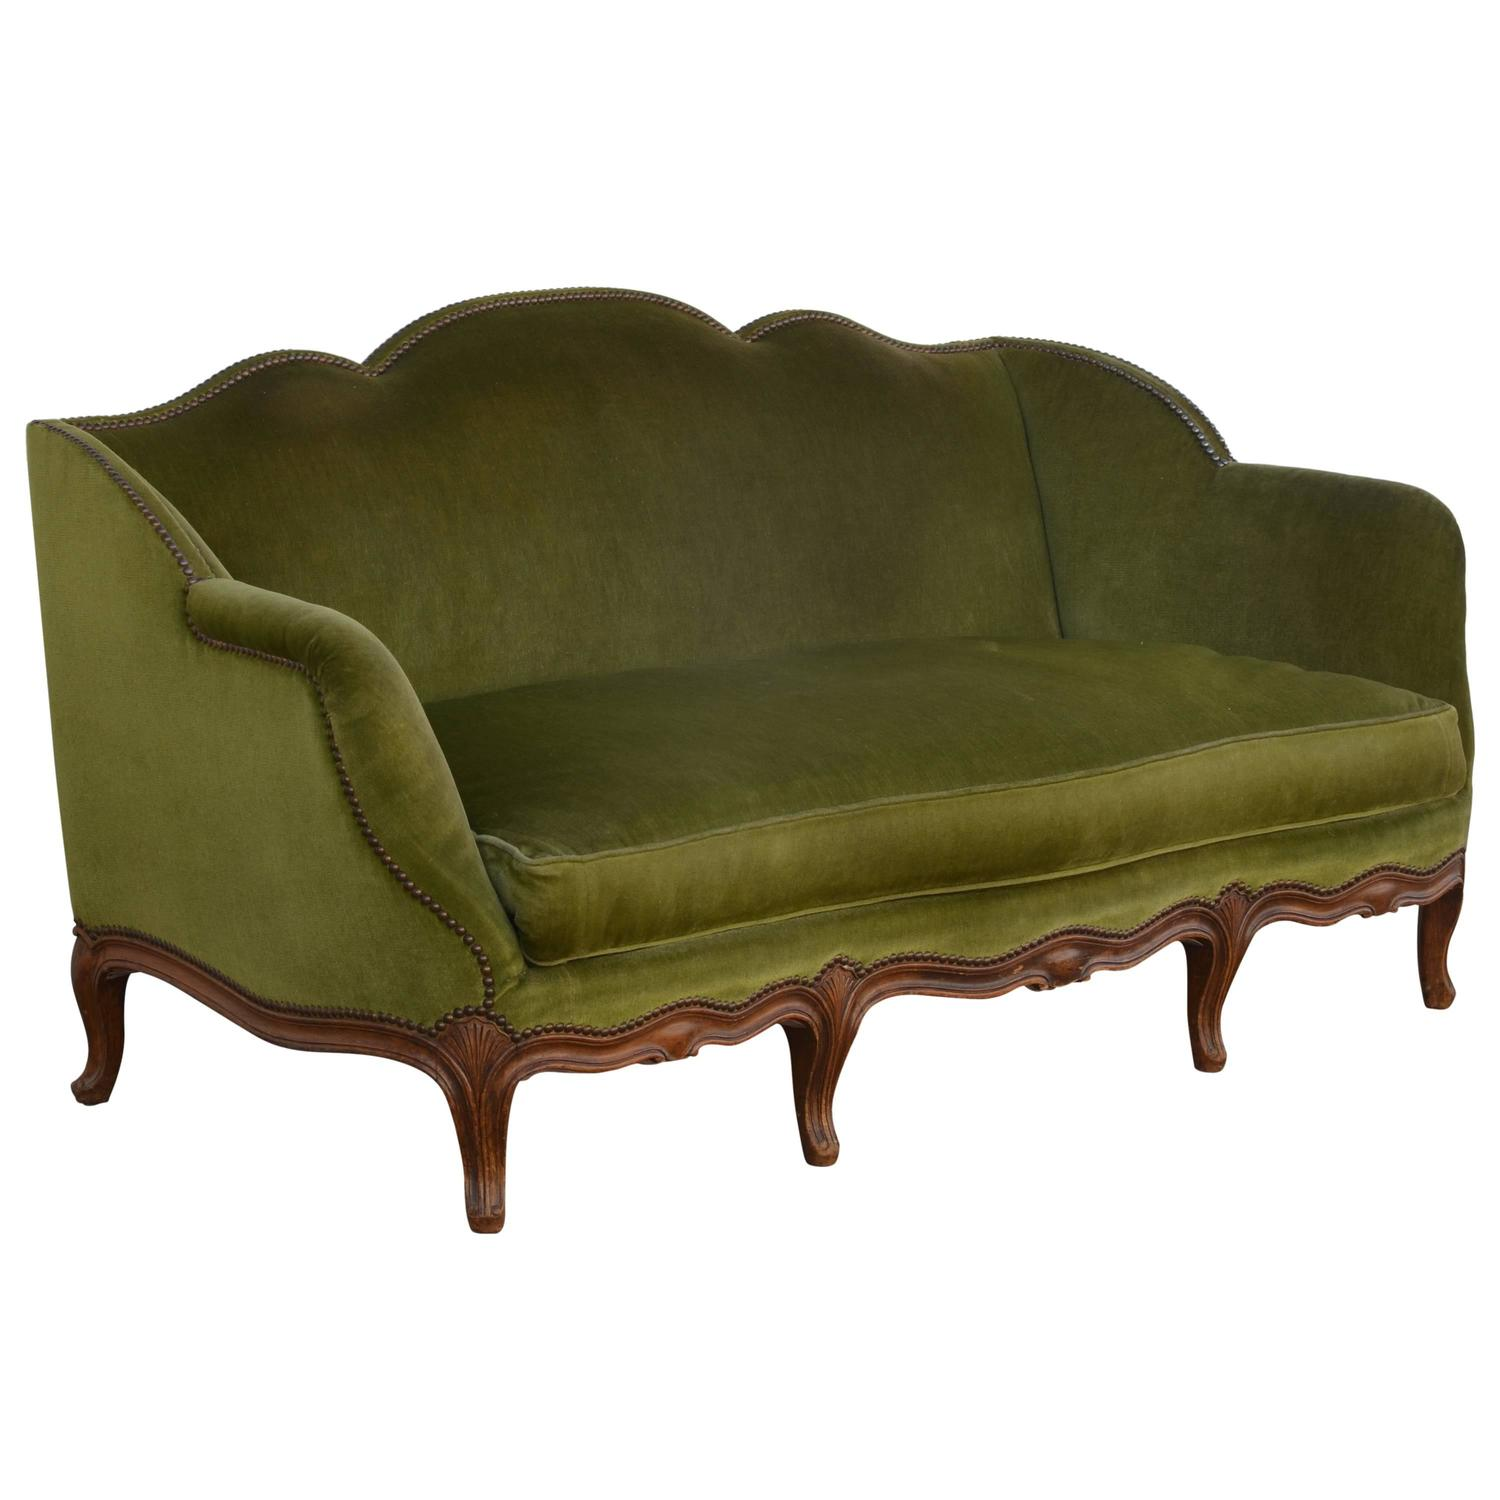 french velvet chair folding table and elegant 1940s louis xv style green sofa for